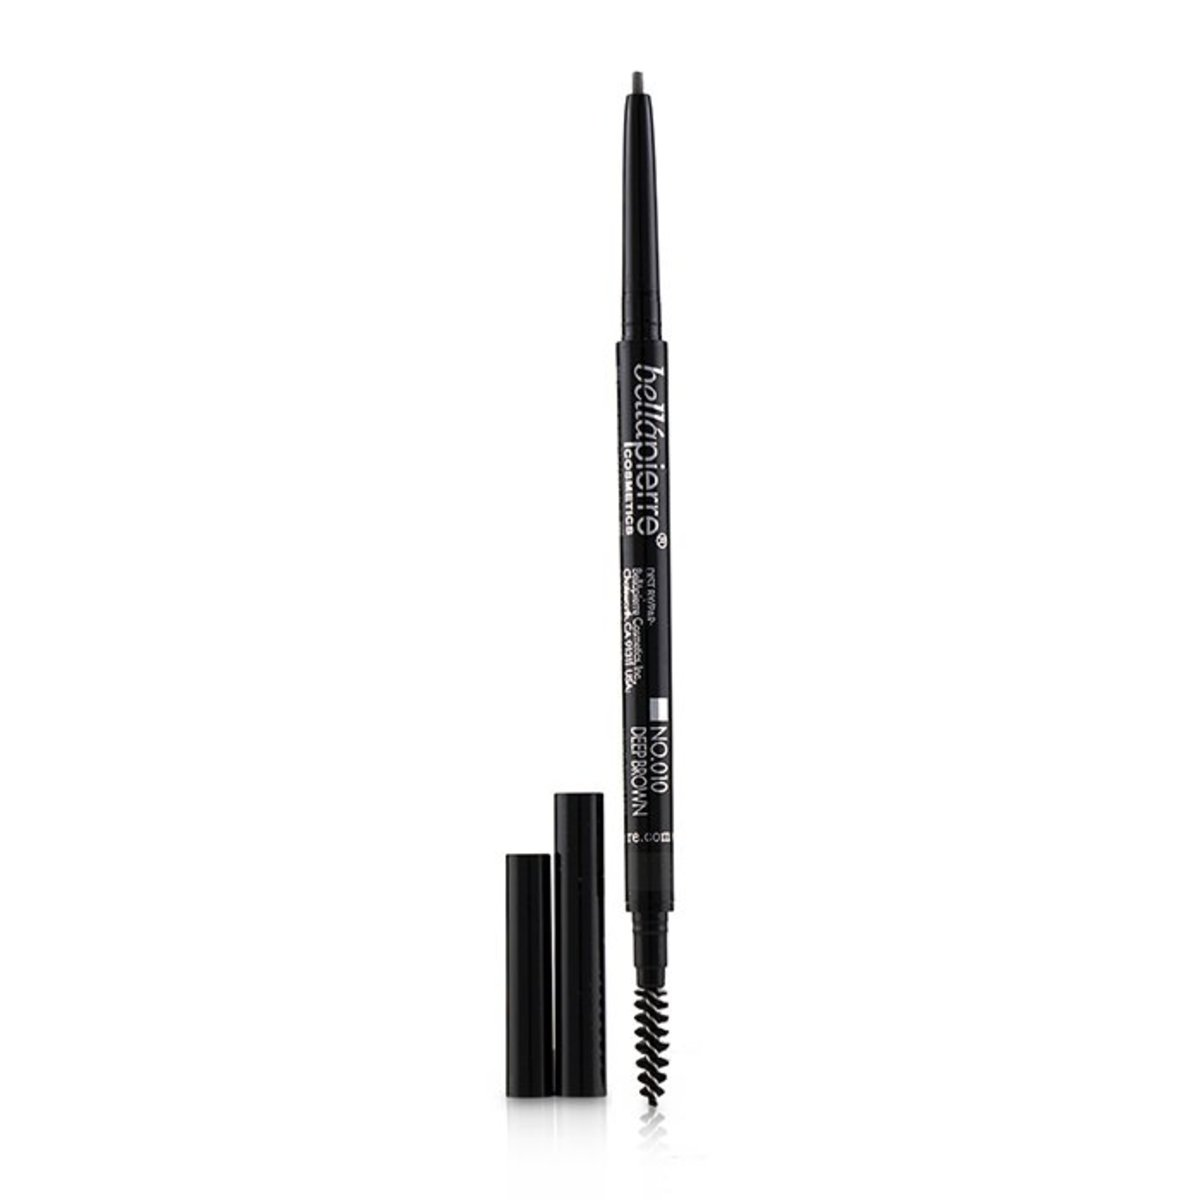 TwistUP Brow Pencil - # Deep Brown BPEN013 0.3g [Parallel Import]